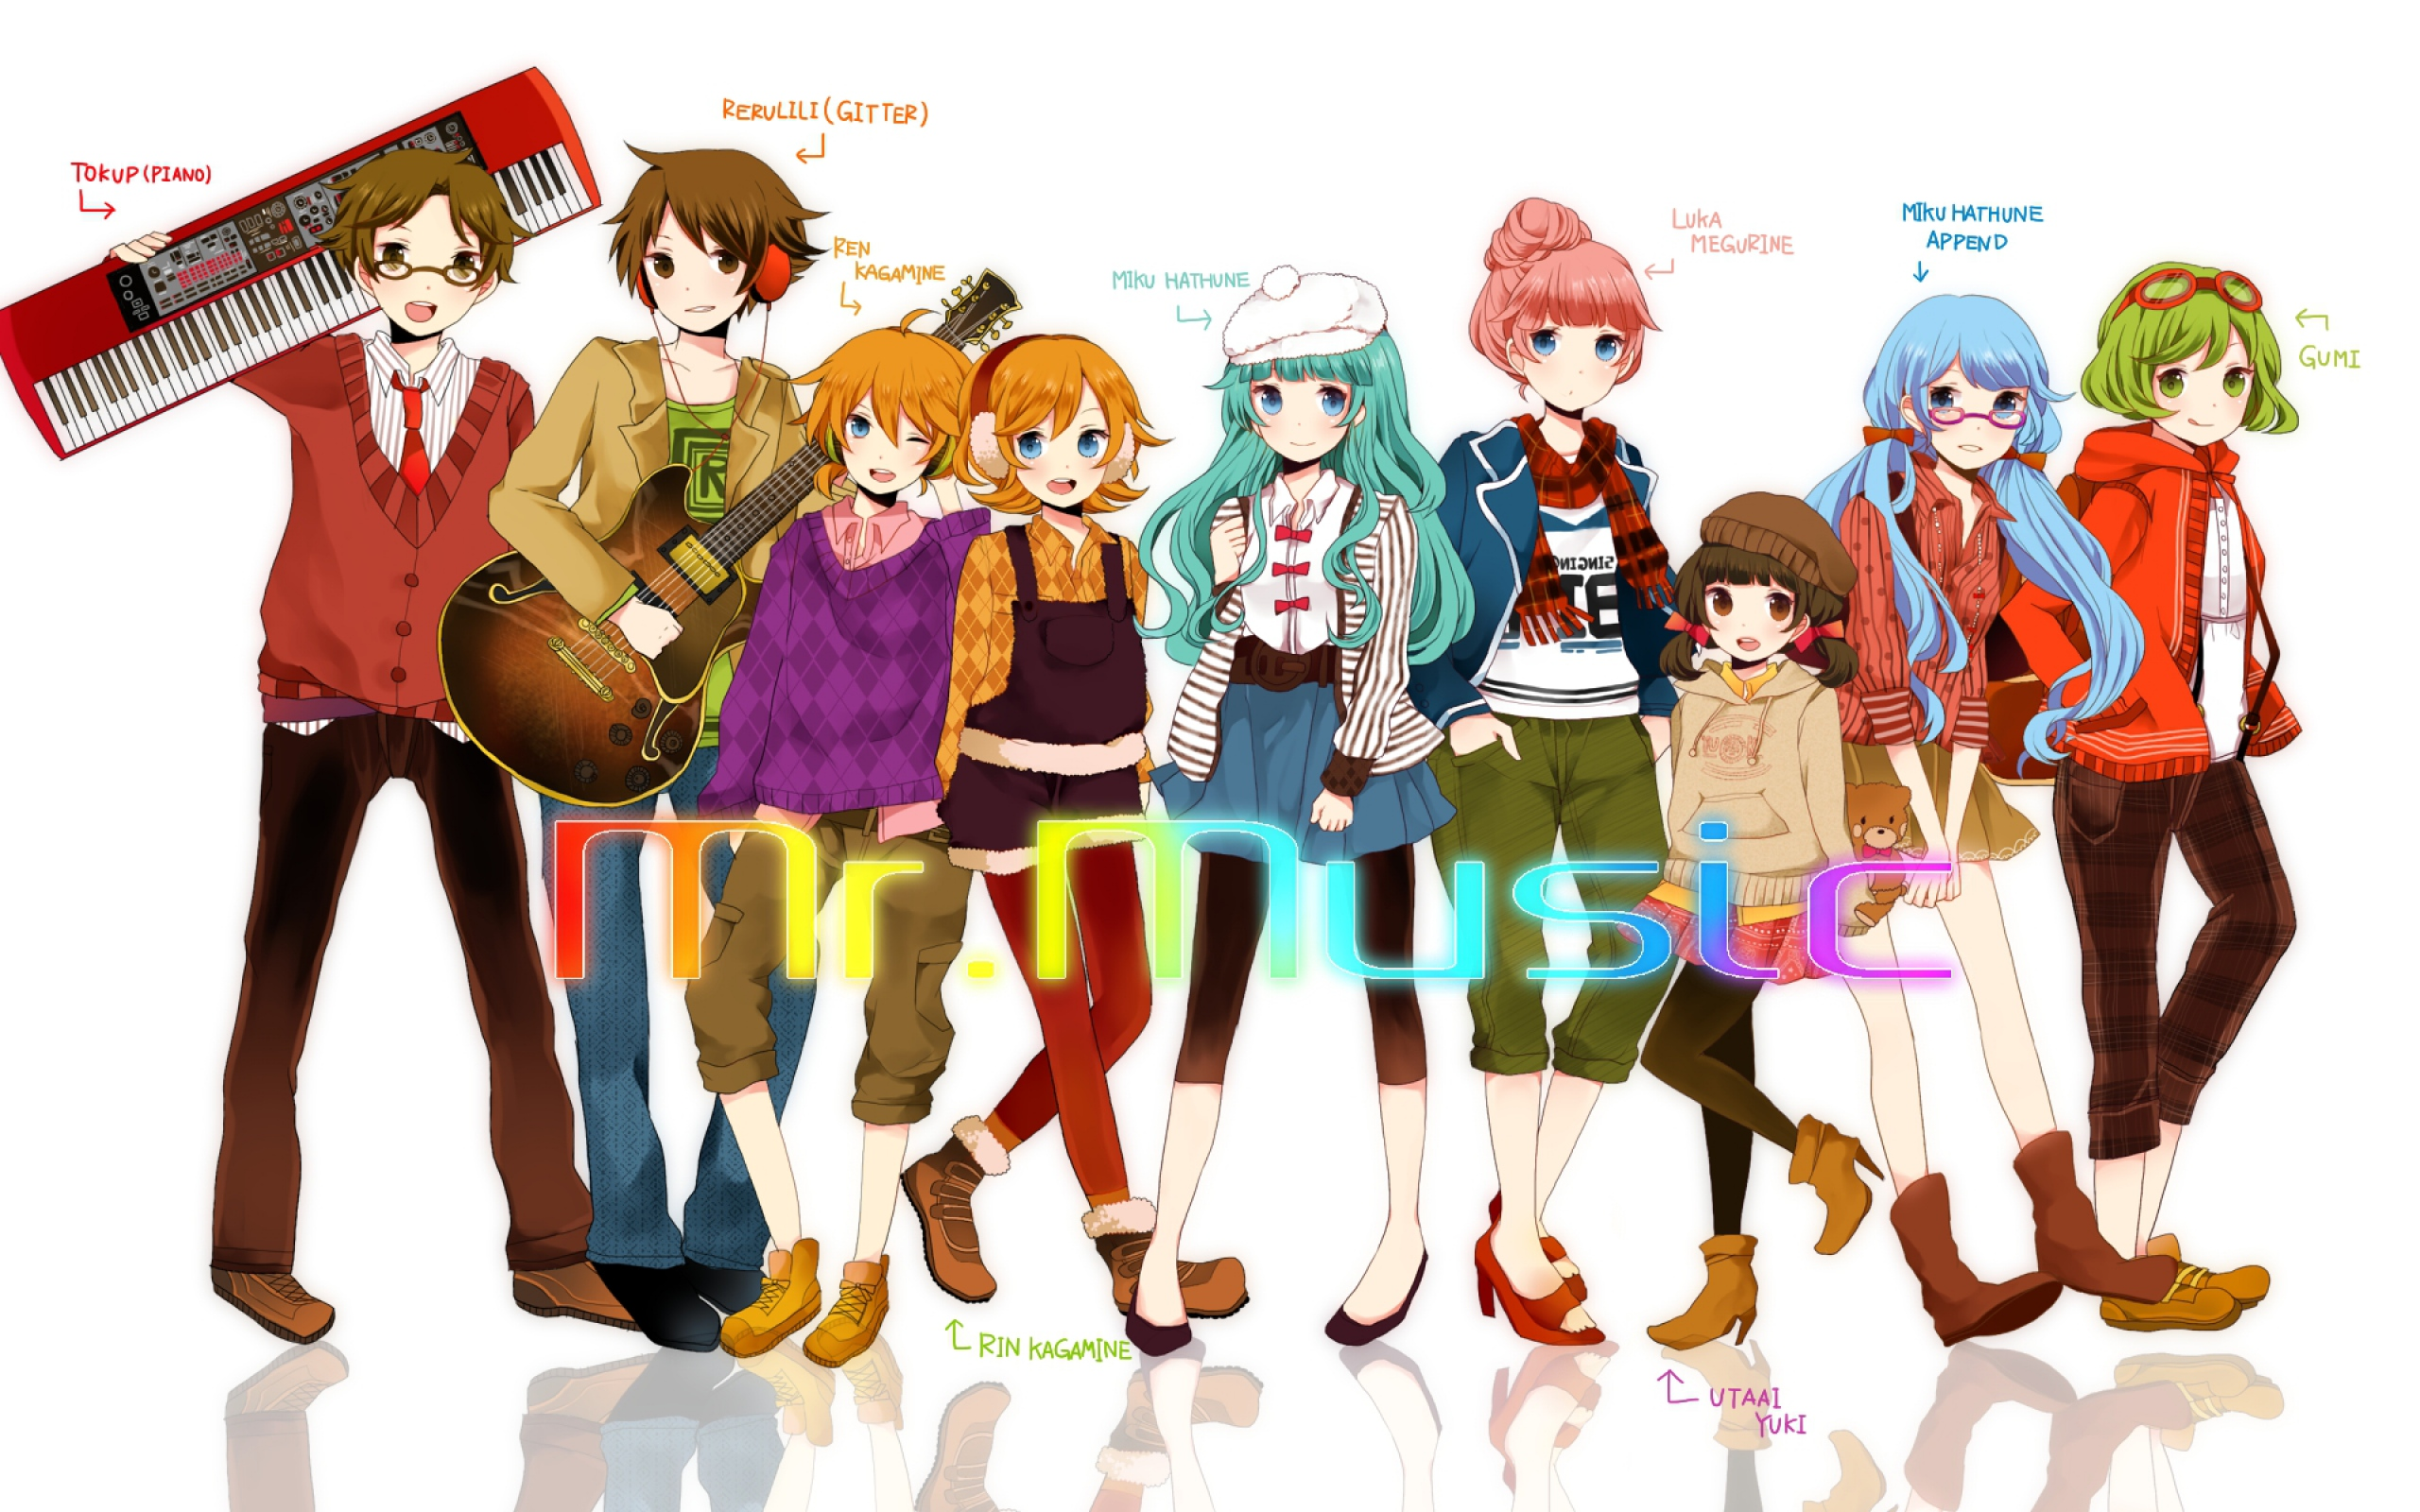 Anime - Vocaloid  - Anime Girl - Anime Girls - Girl - Girls - Anime - Musica Papel de Parede